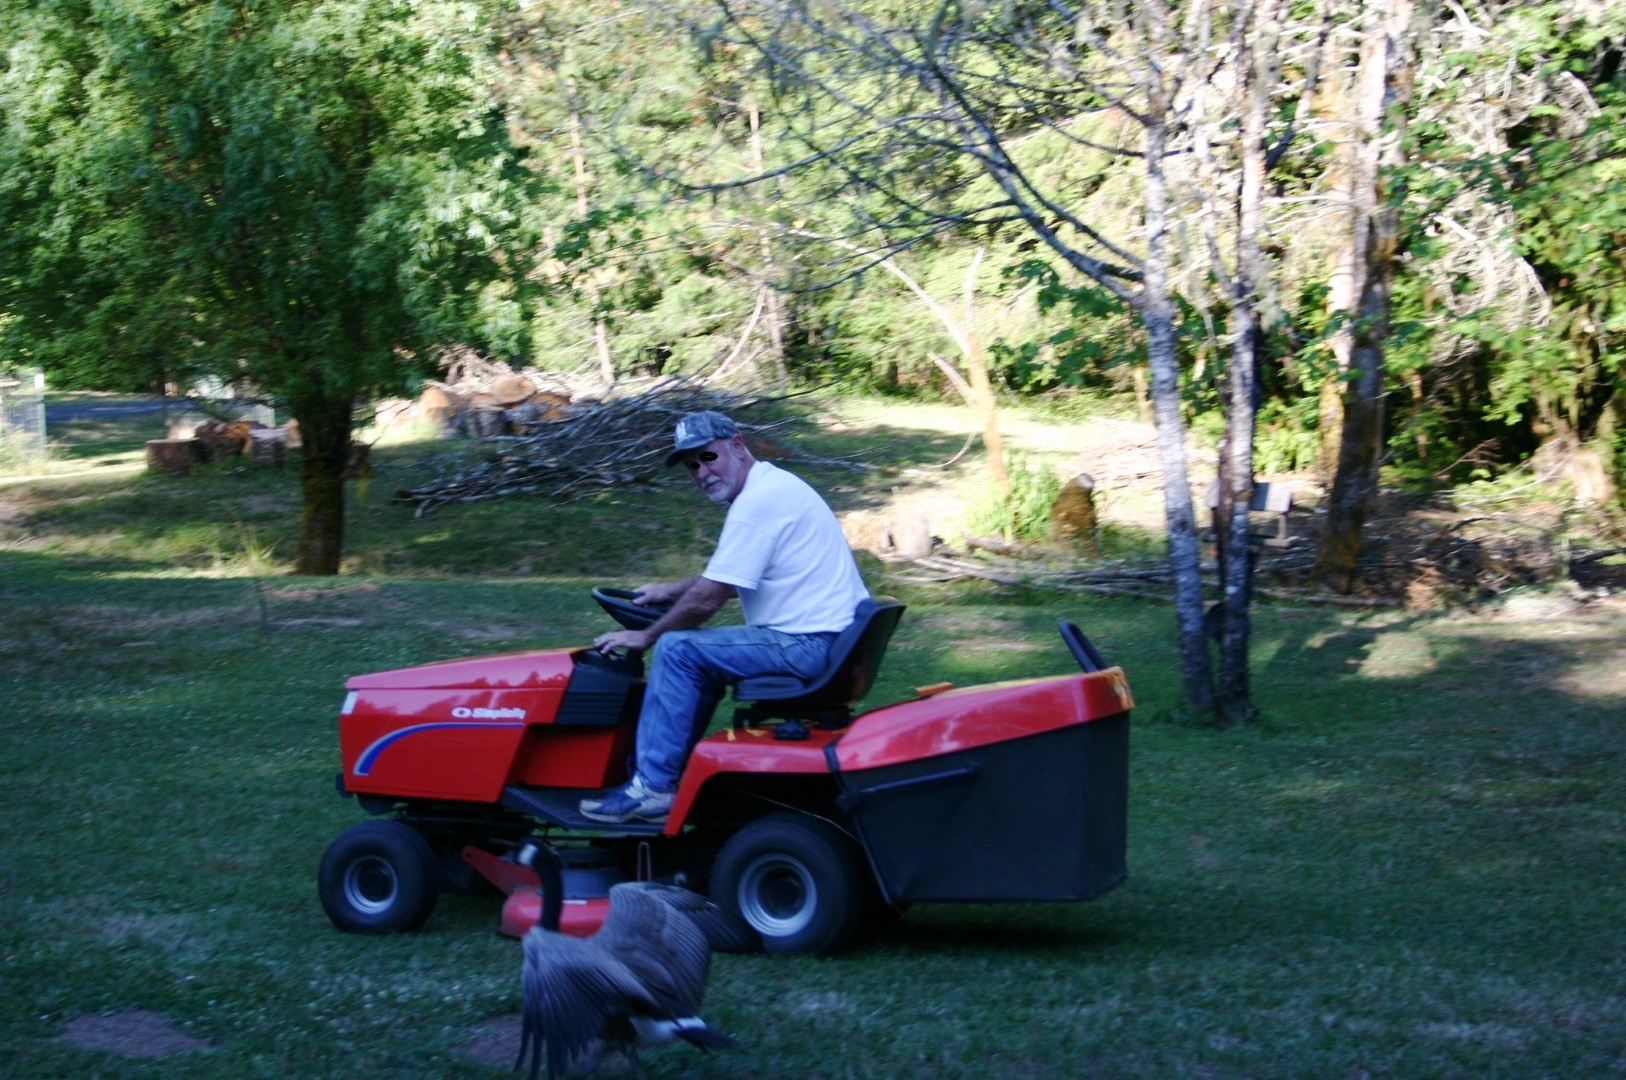 JOE & LAWNMOWER 004 - Copy (Large).jpg